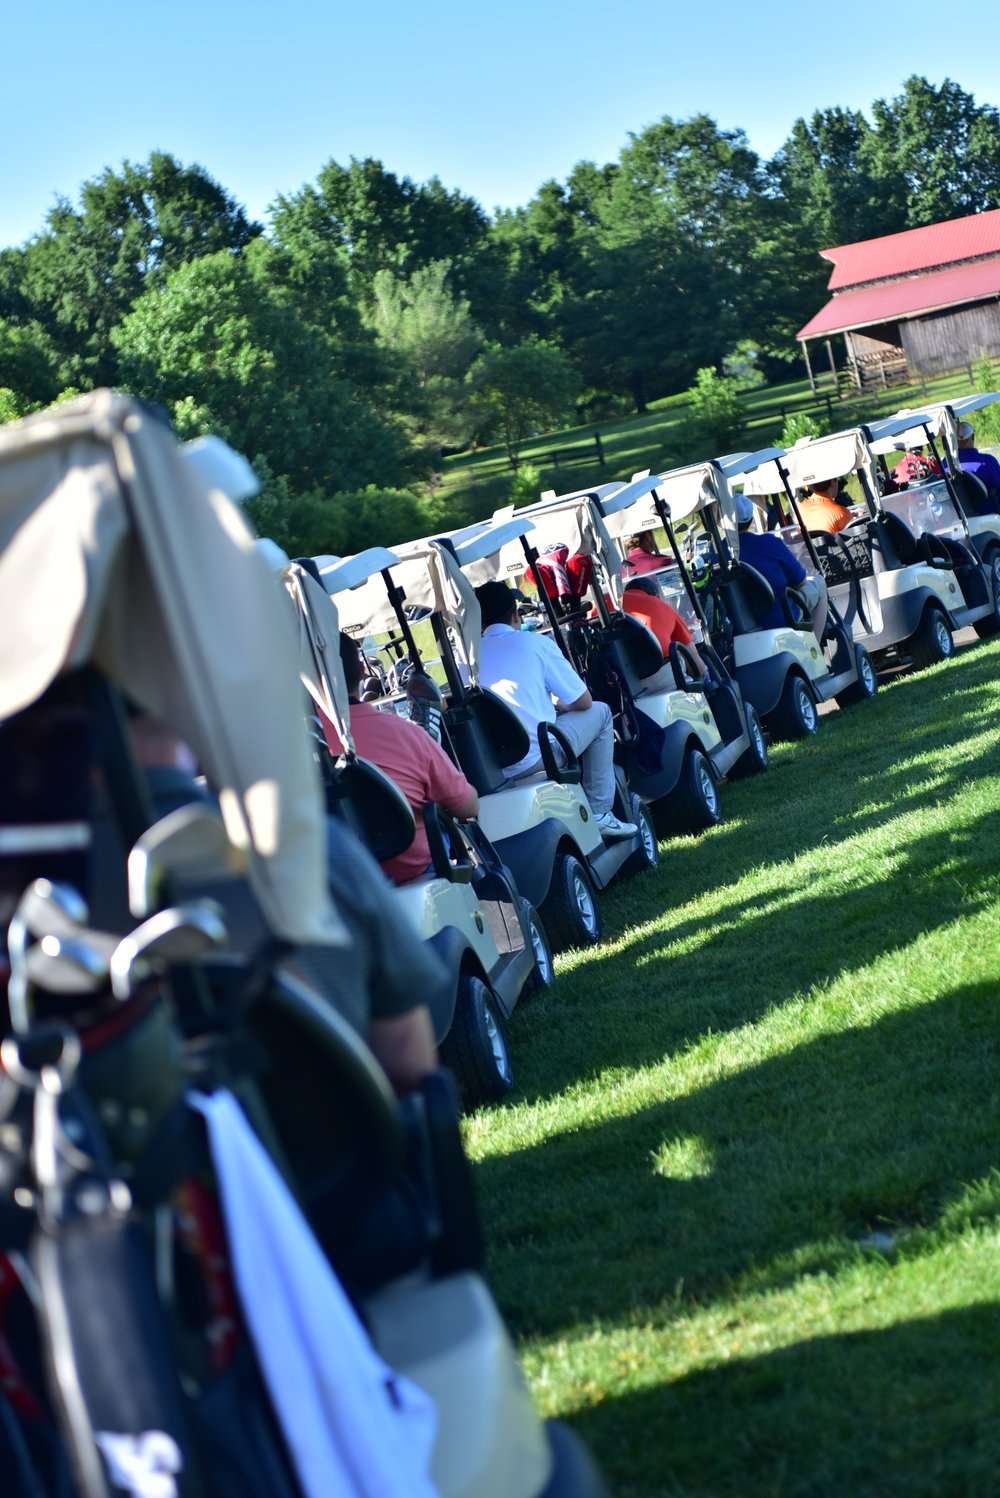 7th Annual Sheriff's Posse Golf Roundup - June 1, 2018 -  Old Trail Golf Club in Crozet, VA. AM and PM flights available.$500 per team - Captain's Choice FormatFood and Entertainment included.Sign up today!